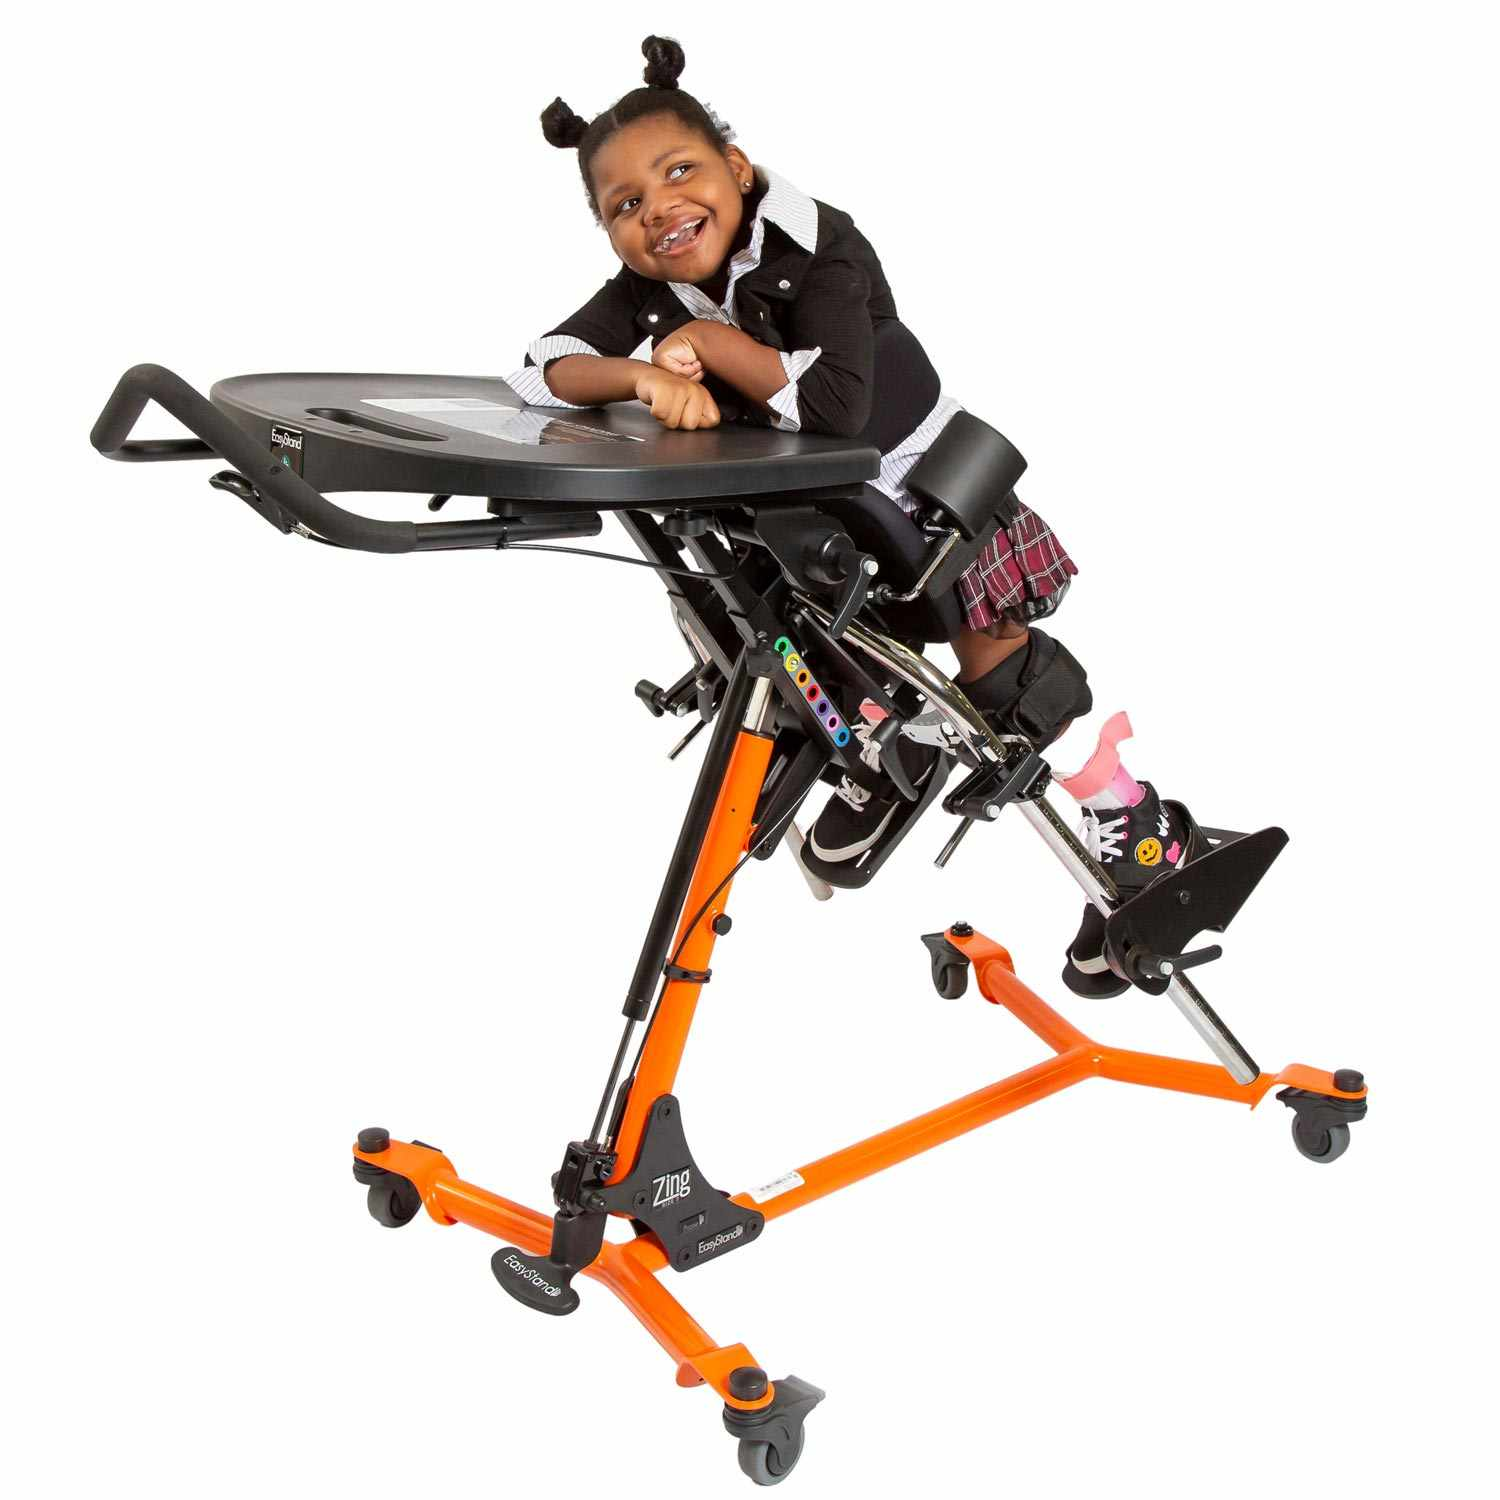 Zing size 2 prone stander - Pow'r up lift